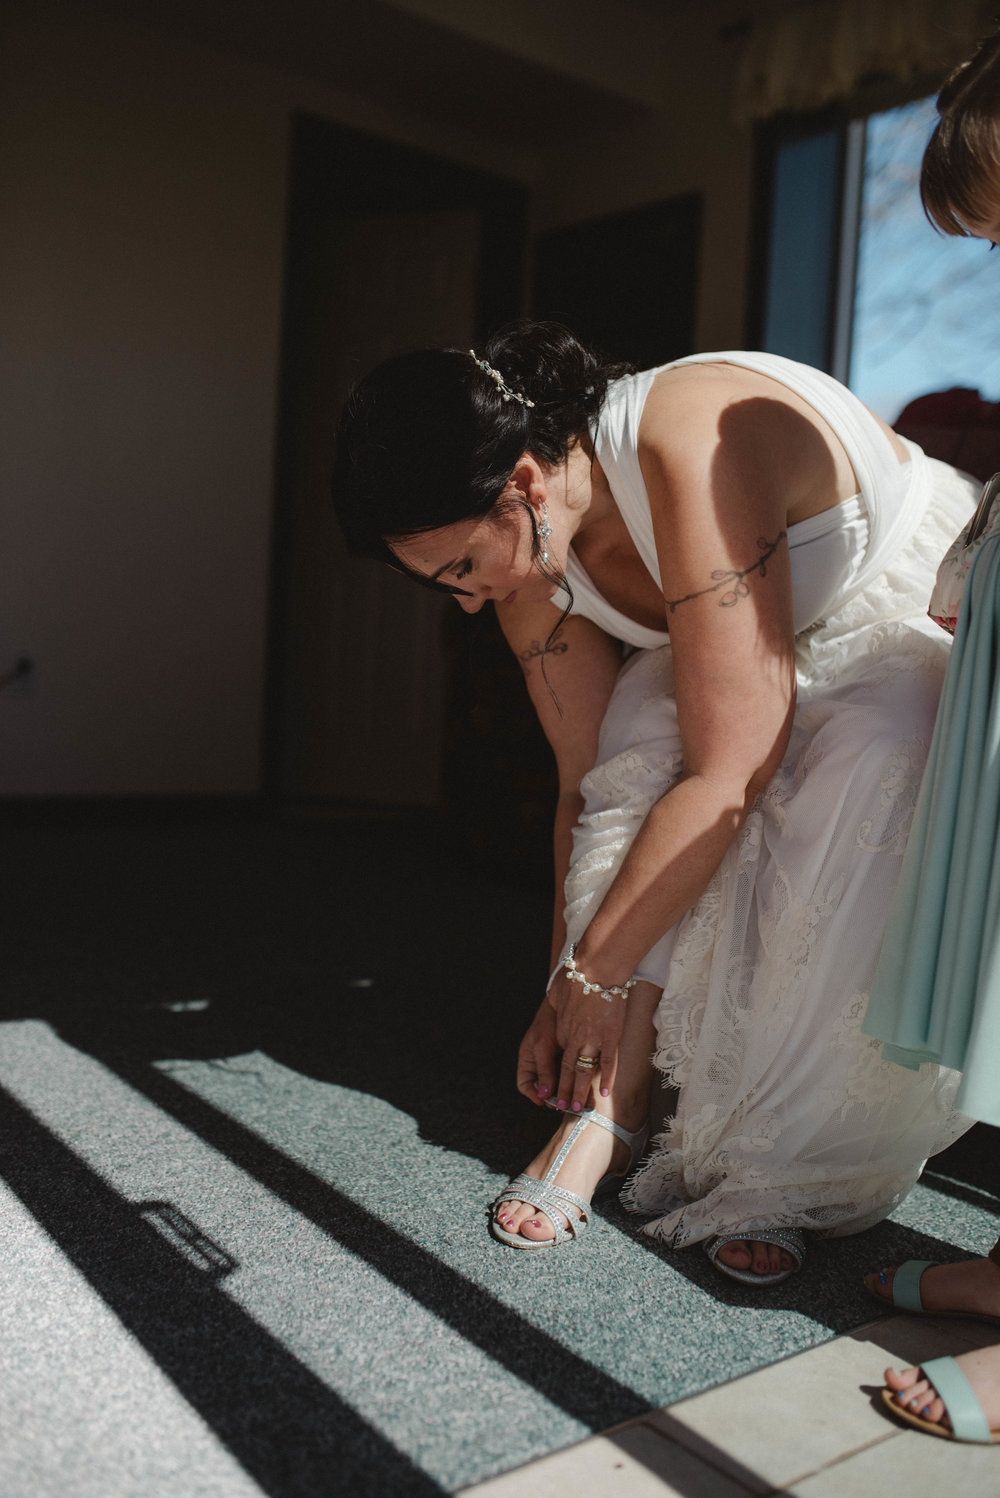 wedding_strathmere_mariage_ottawa_photographer-18.jpg